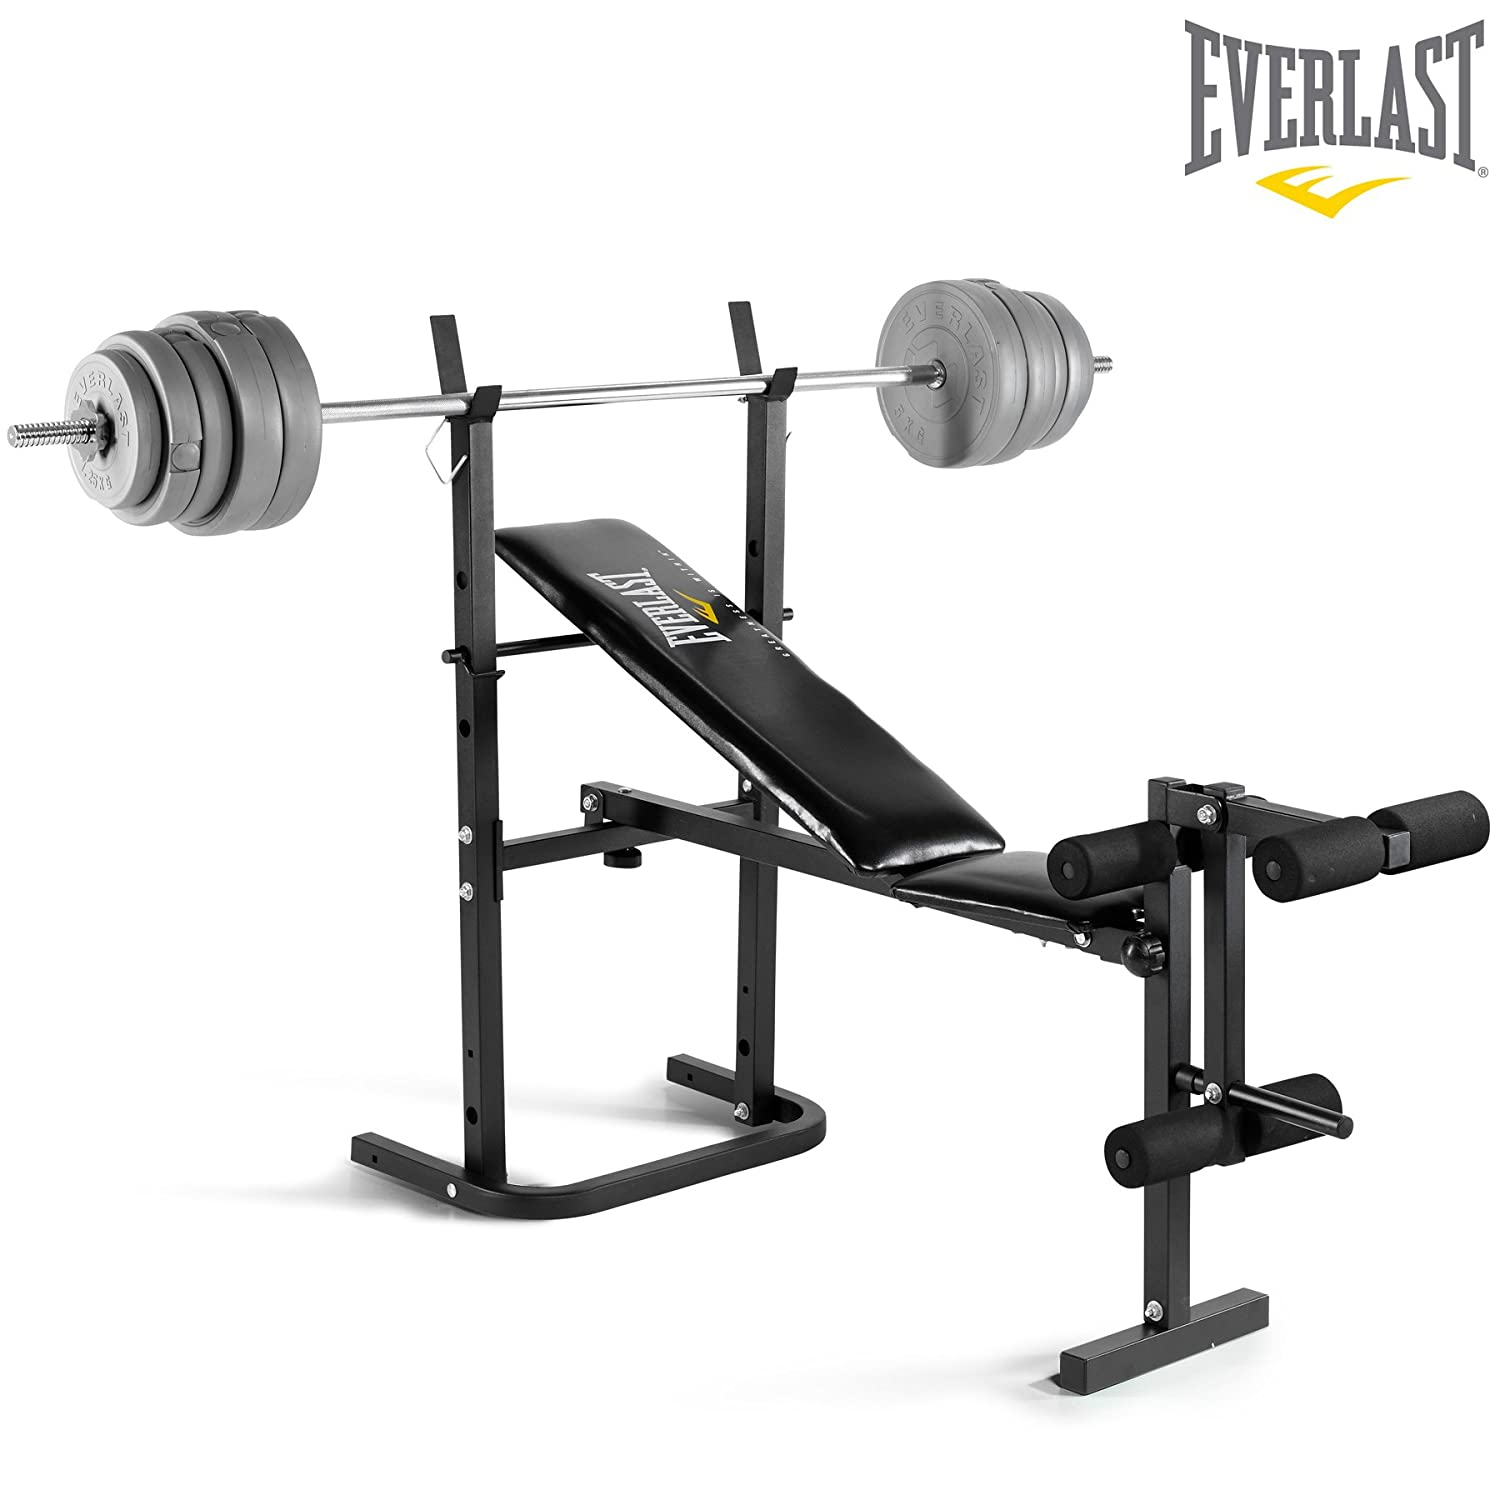 Gym Equipment Sales Jobs Vancouver, Weight Benches